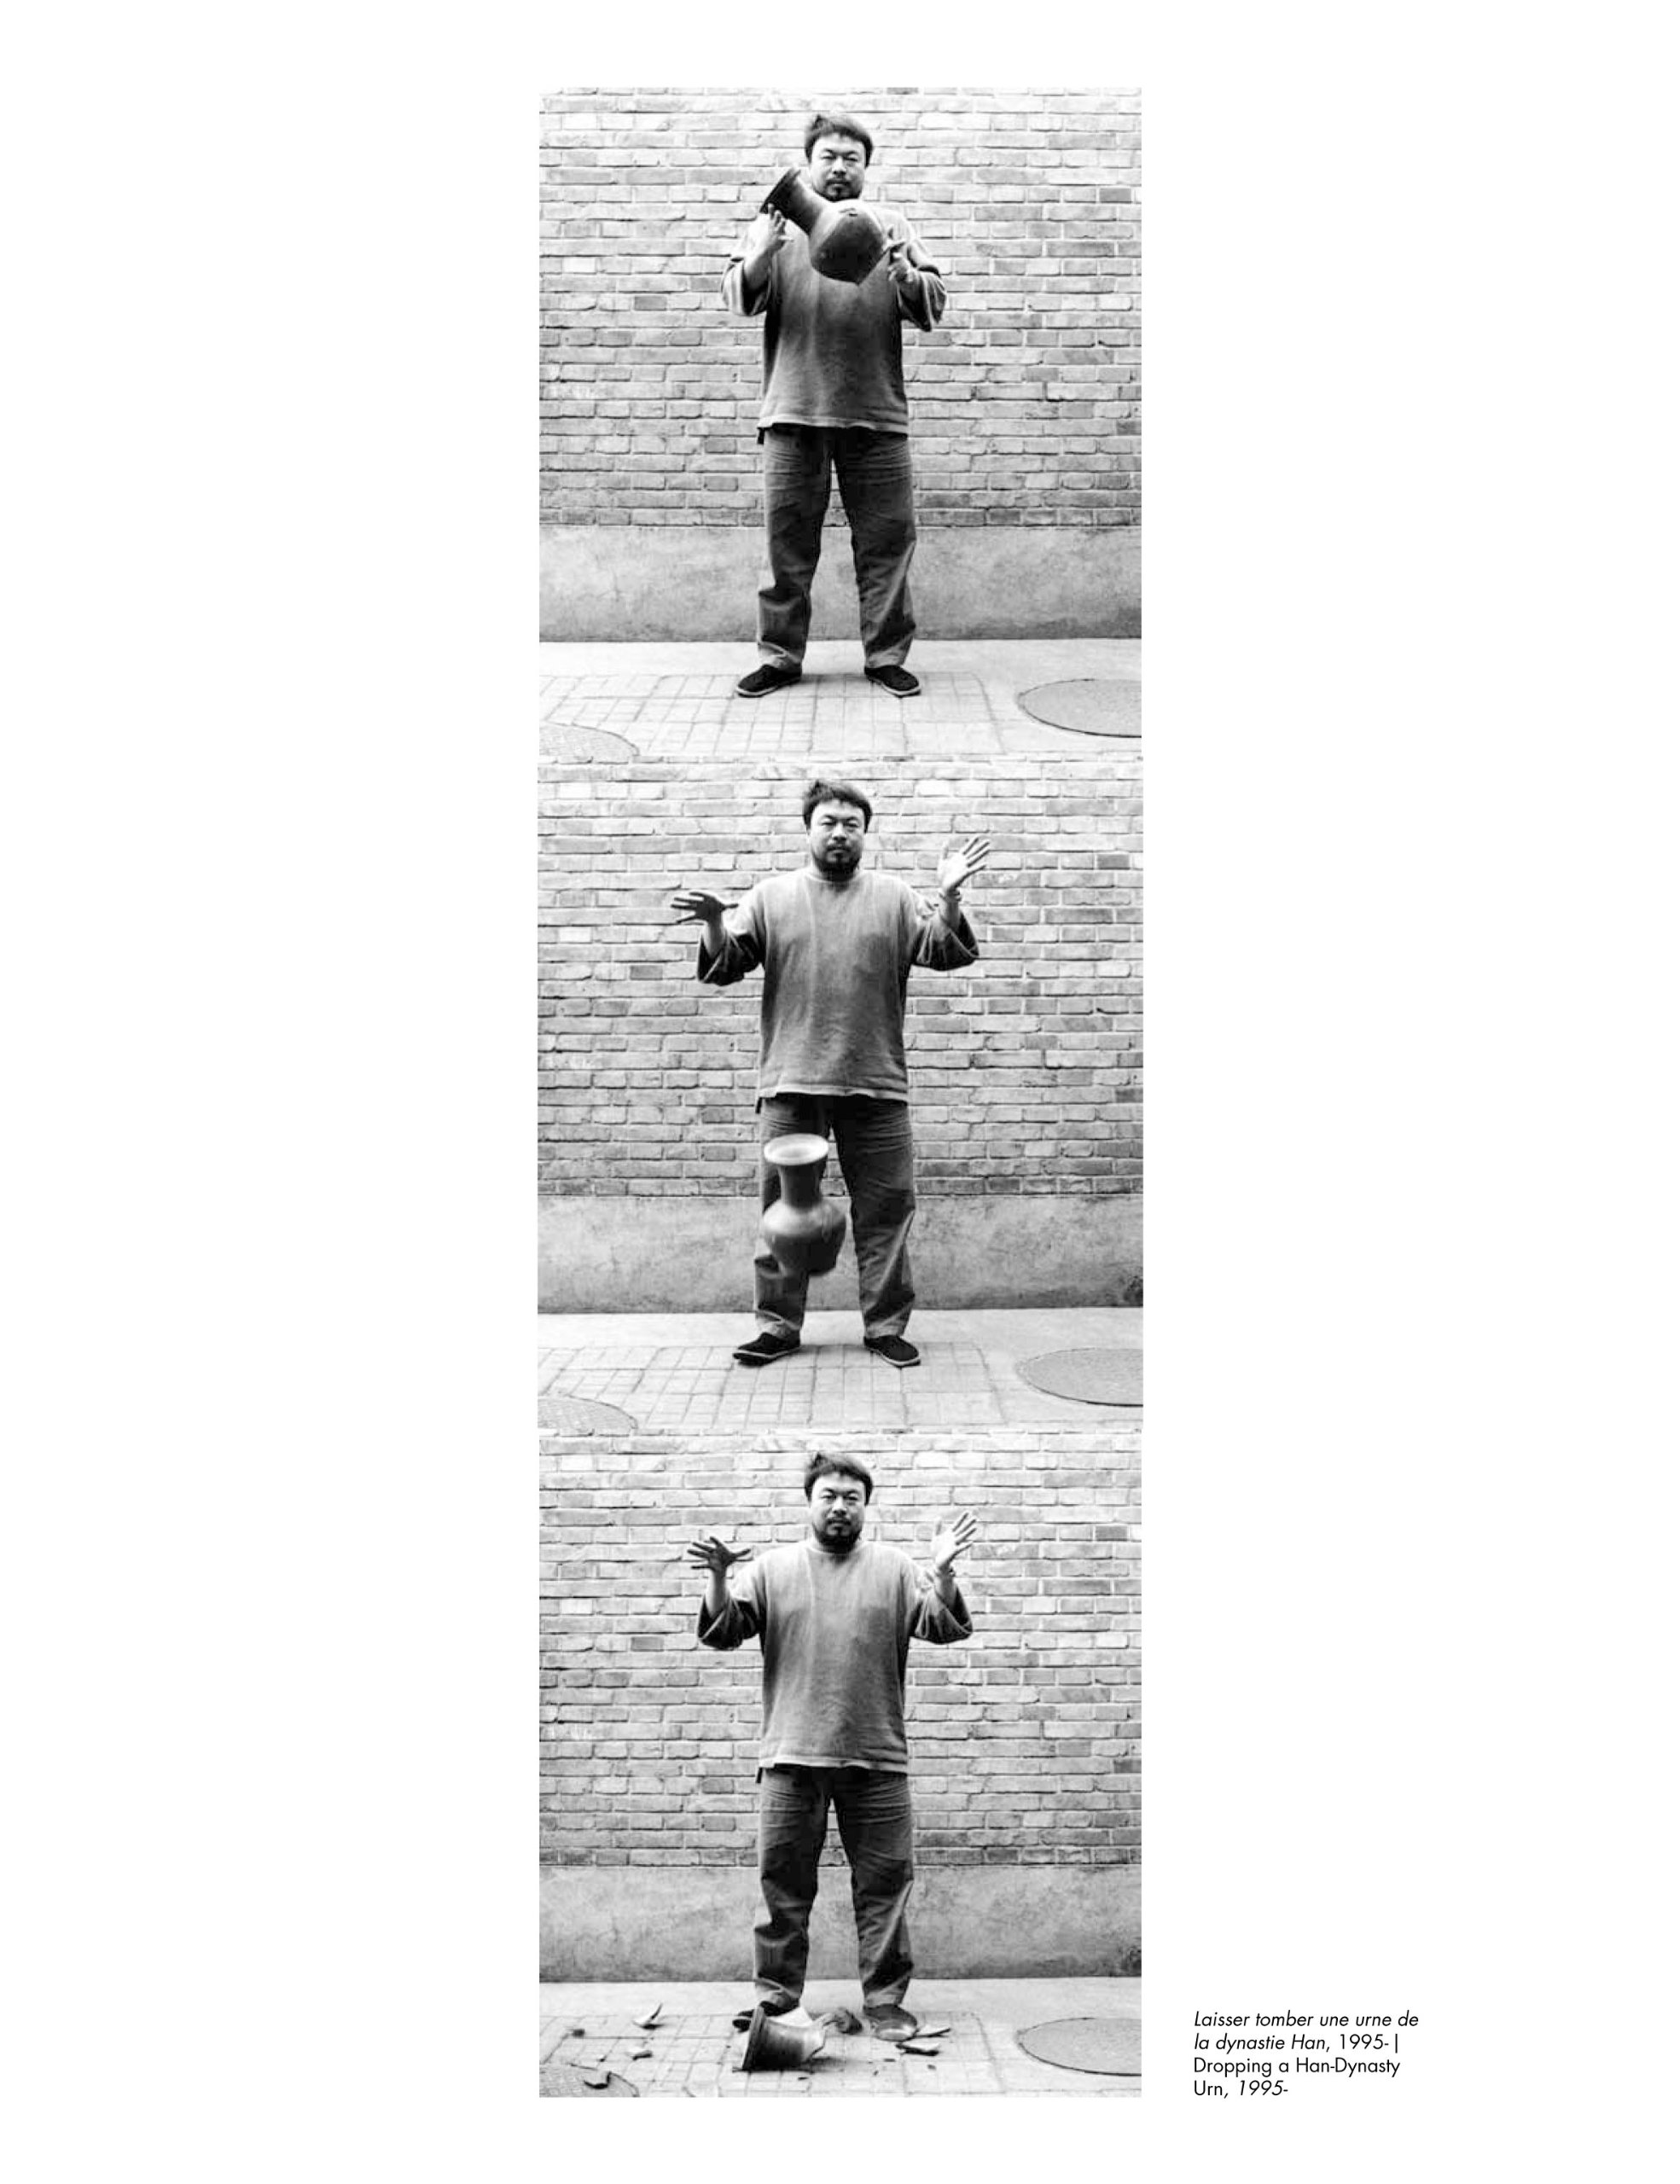 100 PHOTOS DE AI WEIWEI POUR LA LIBERTE: 9782362200205: Amazon.com: Books